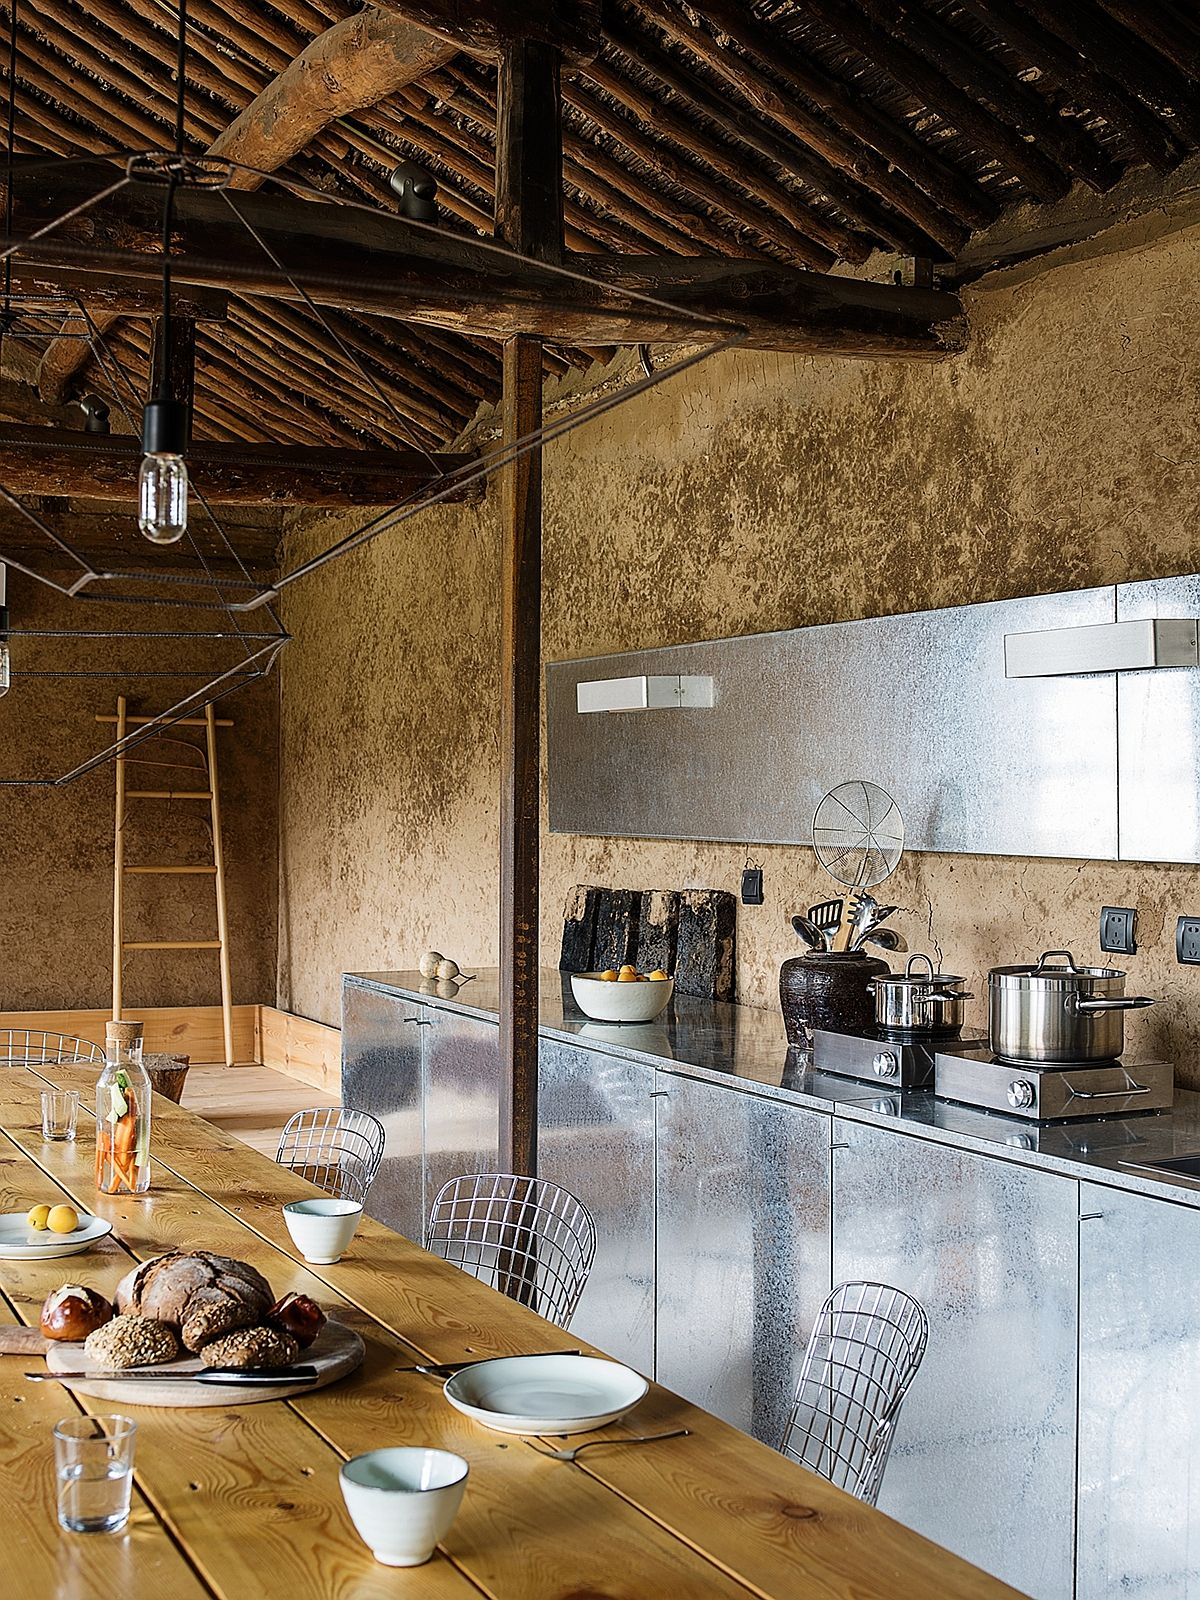 Revived rural home combines efficiency and style in a relaxing fashion